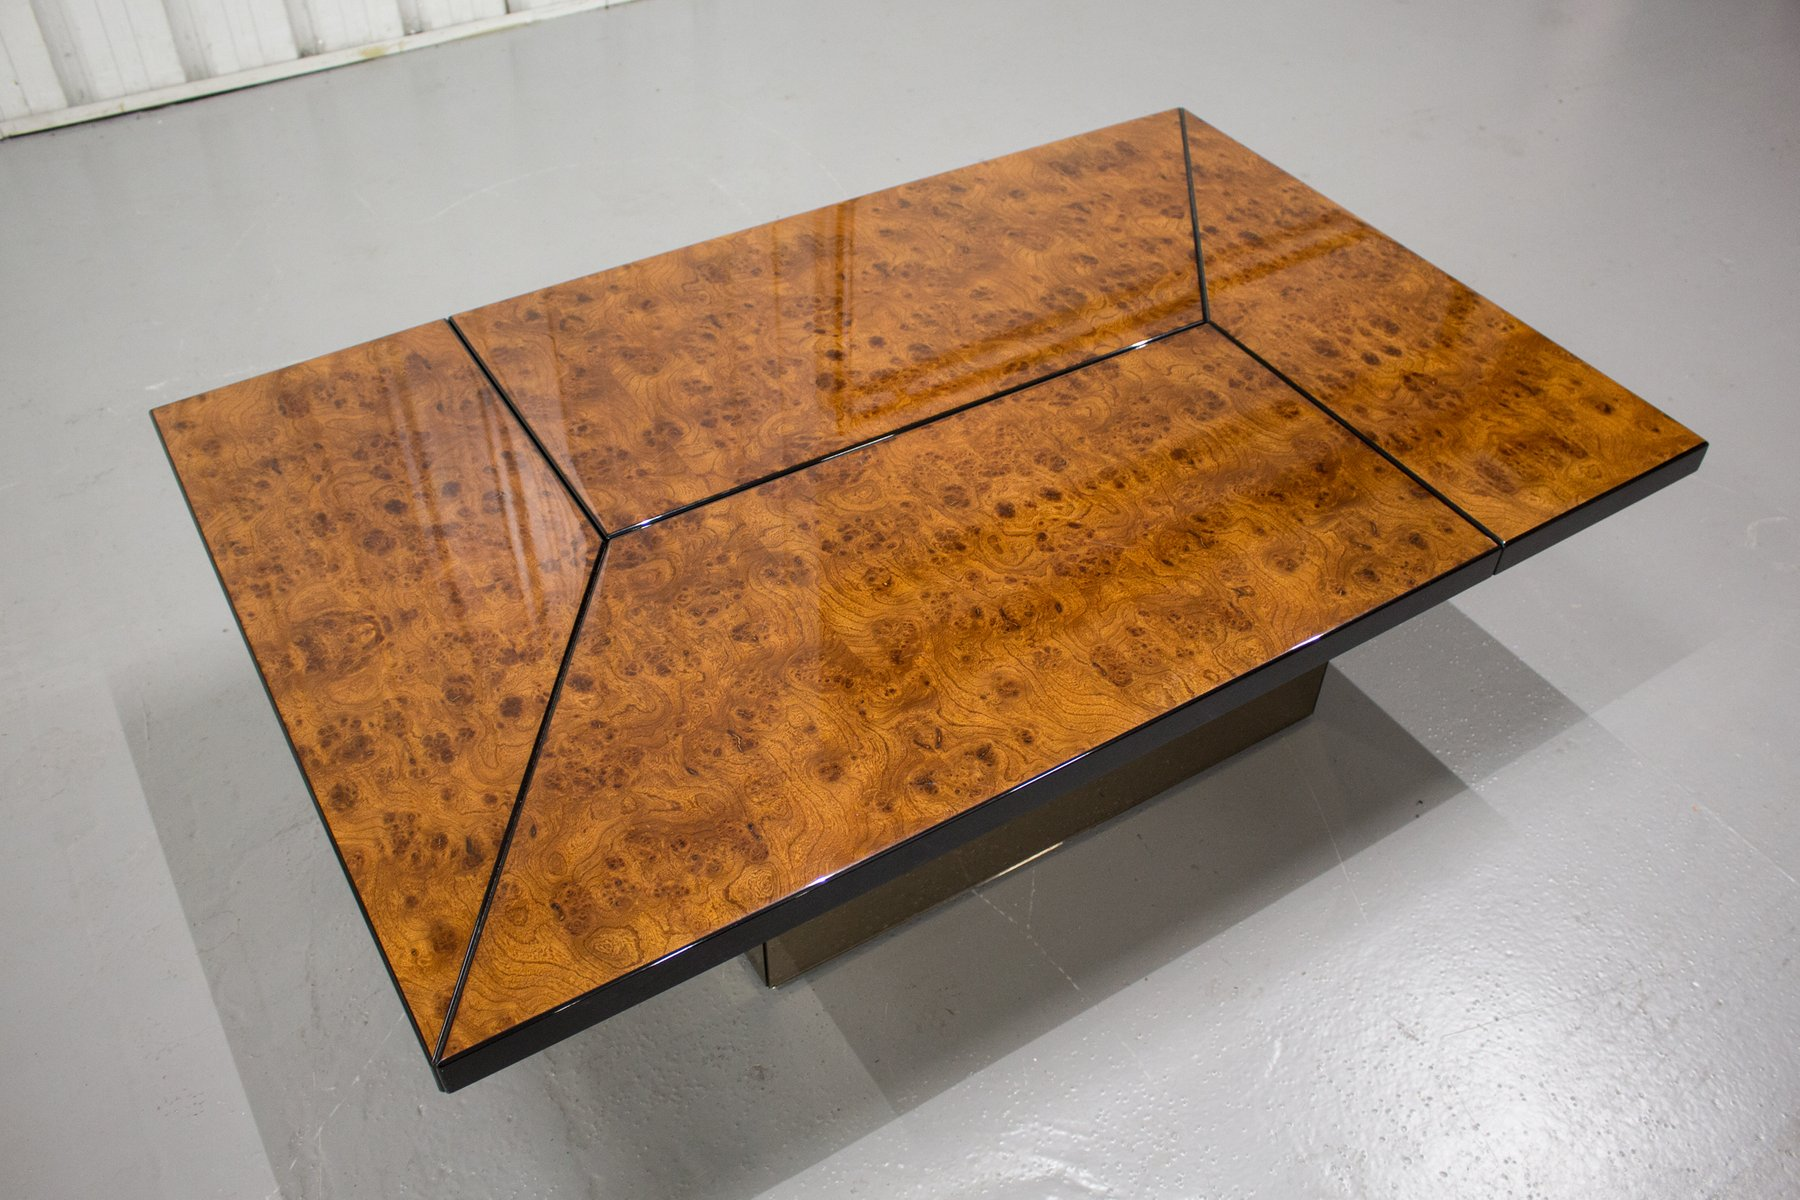 Vintage Burl Coffee Table with Hidden Bar by Paul Michel for sale